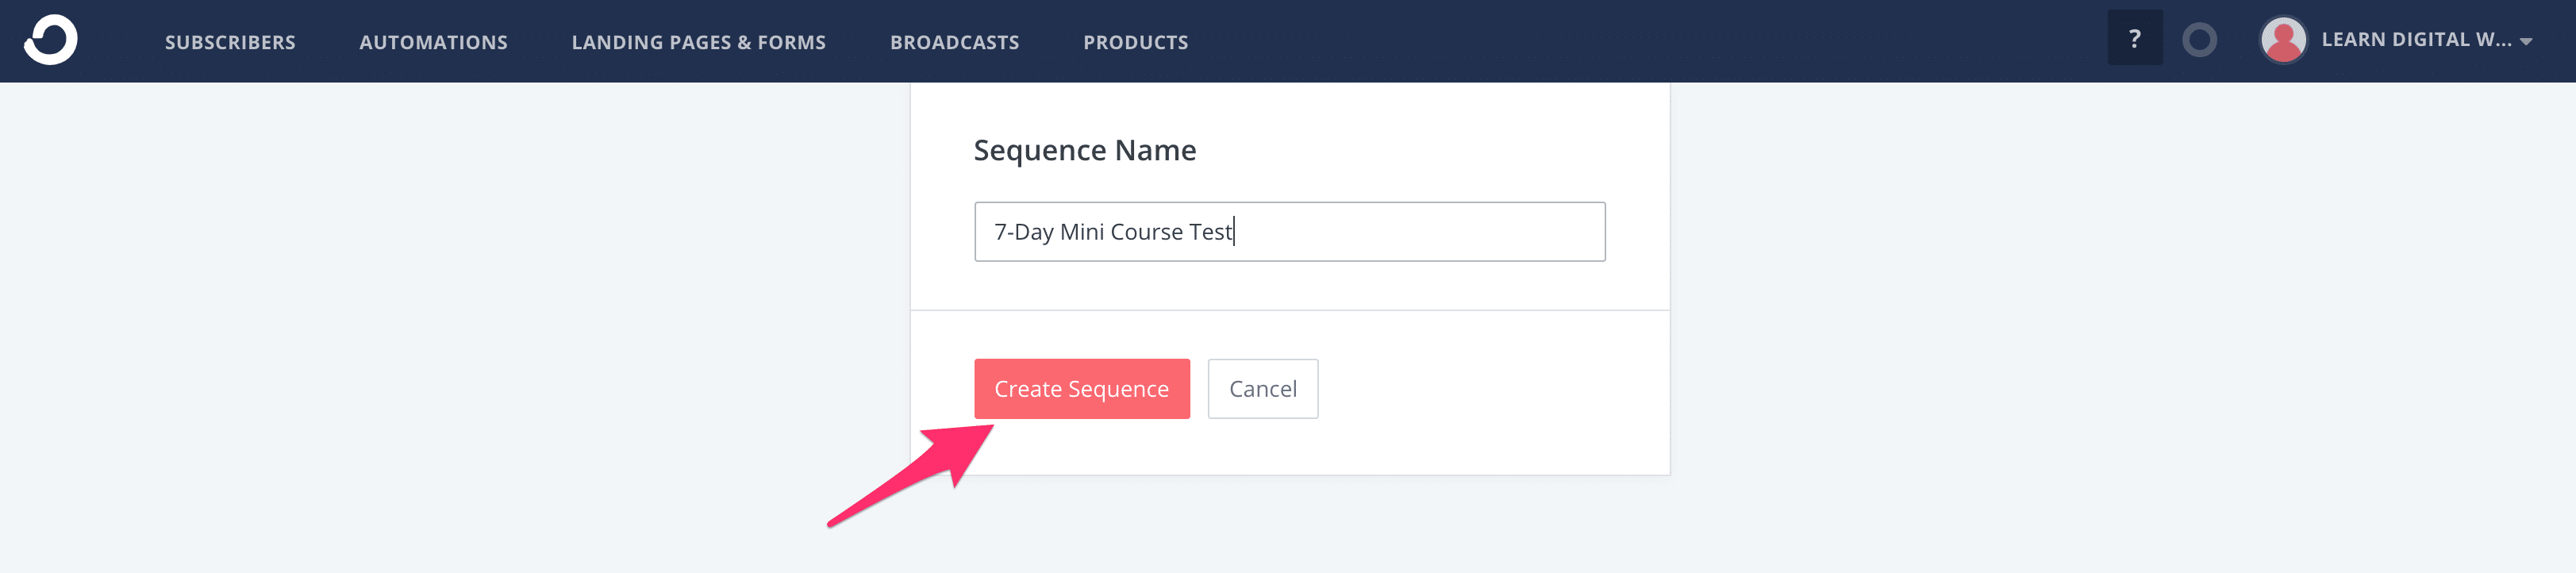 Create A New Email Sequence in ConvertKit - Getting Started with Email Marketing as A Beginner